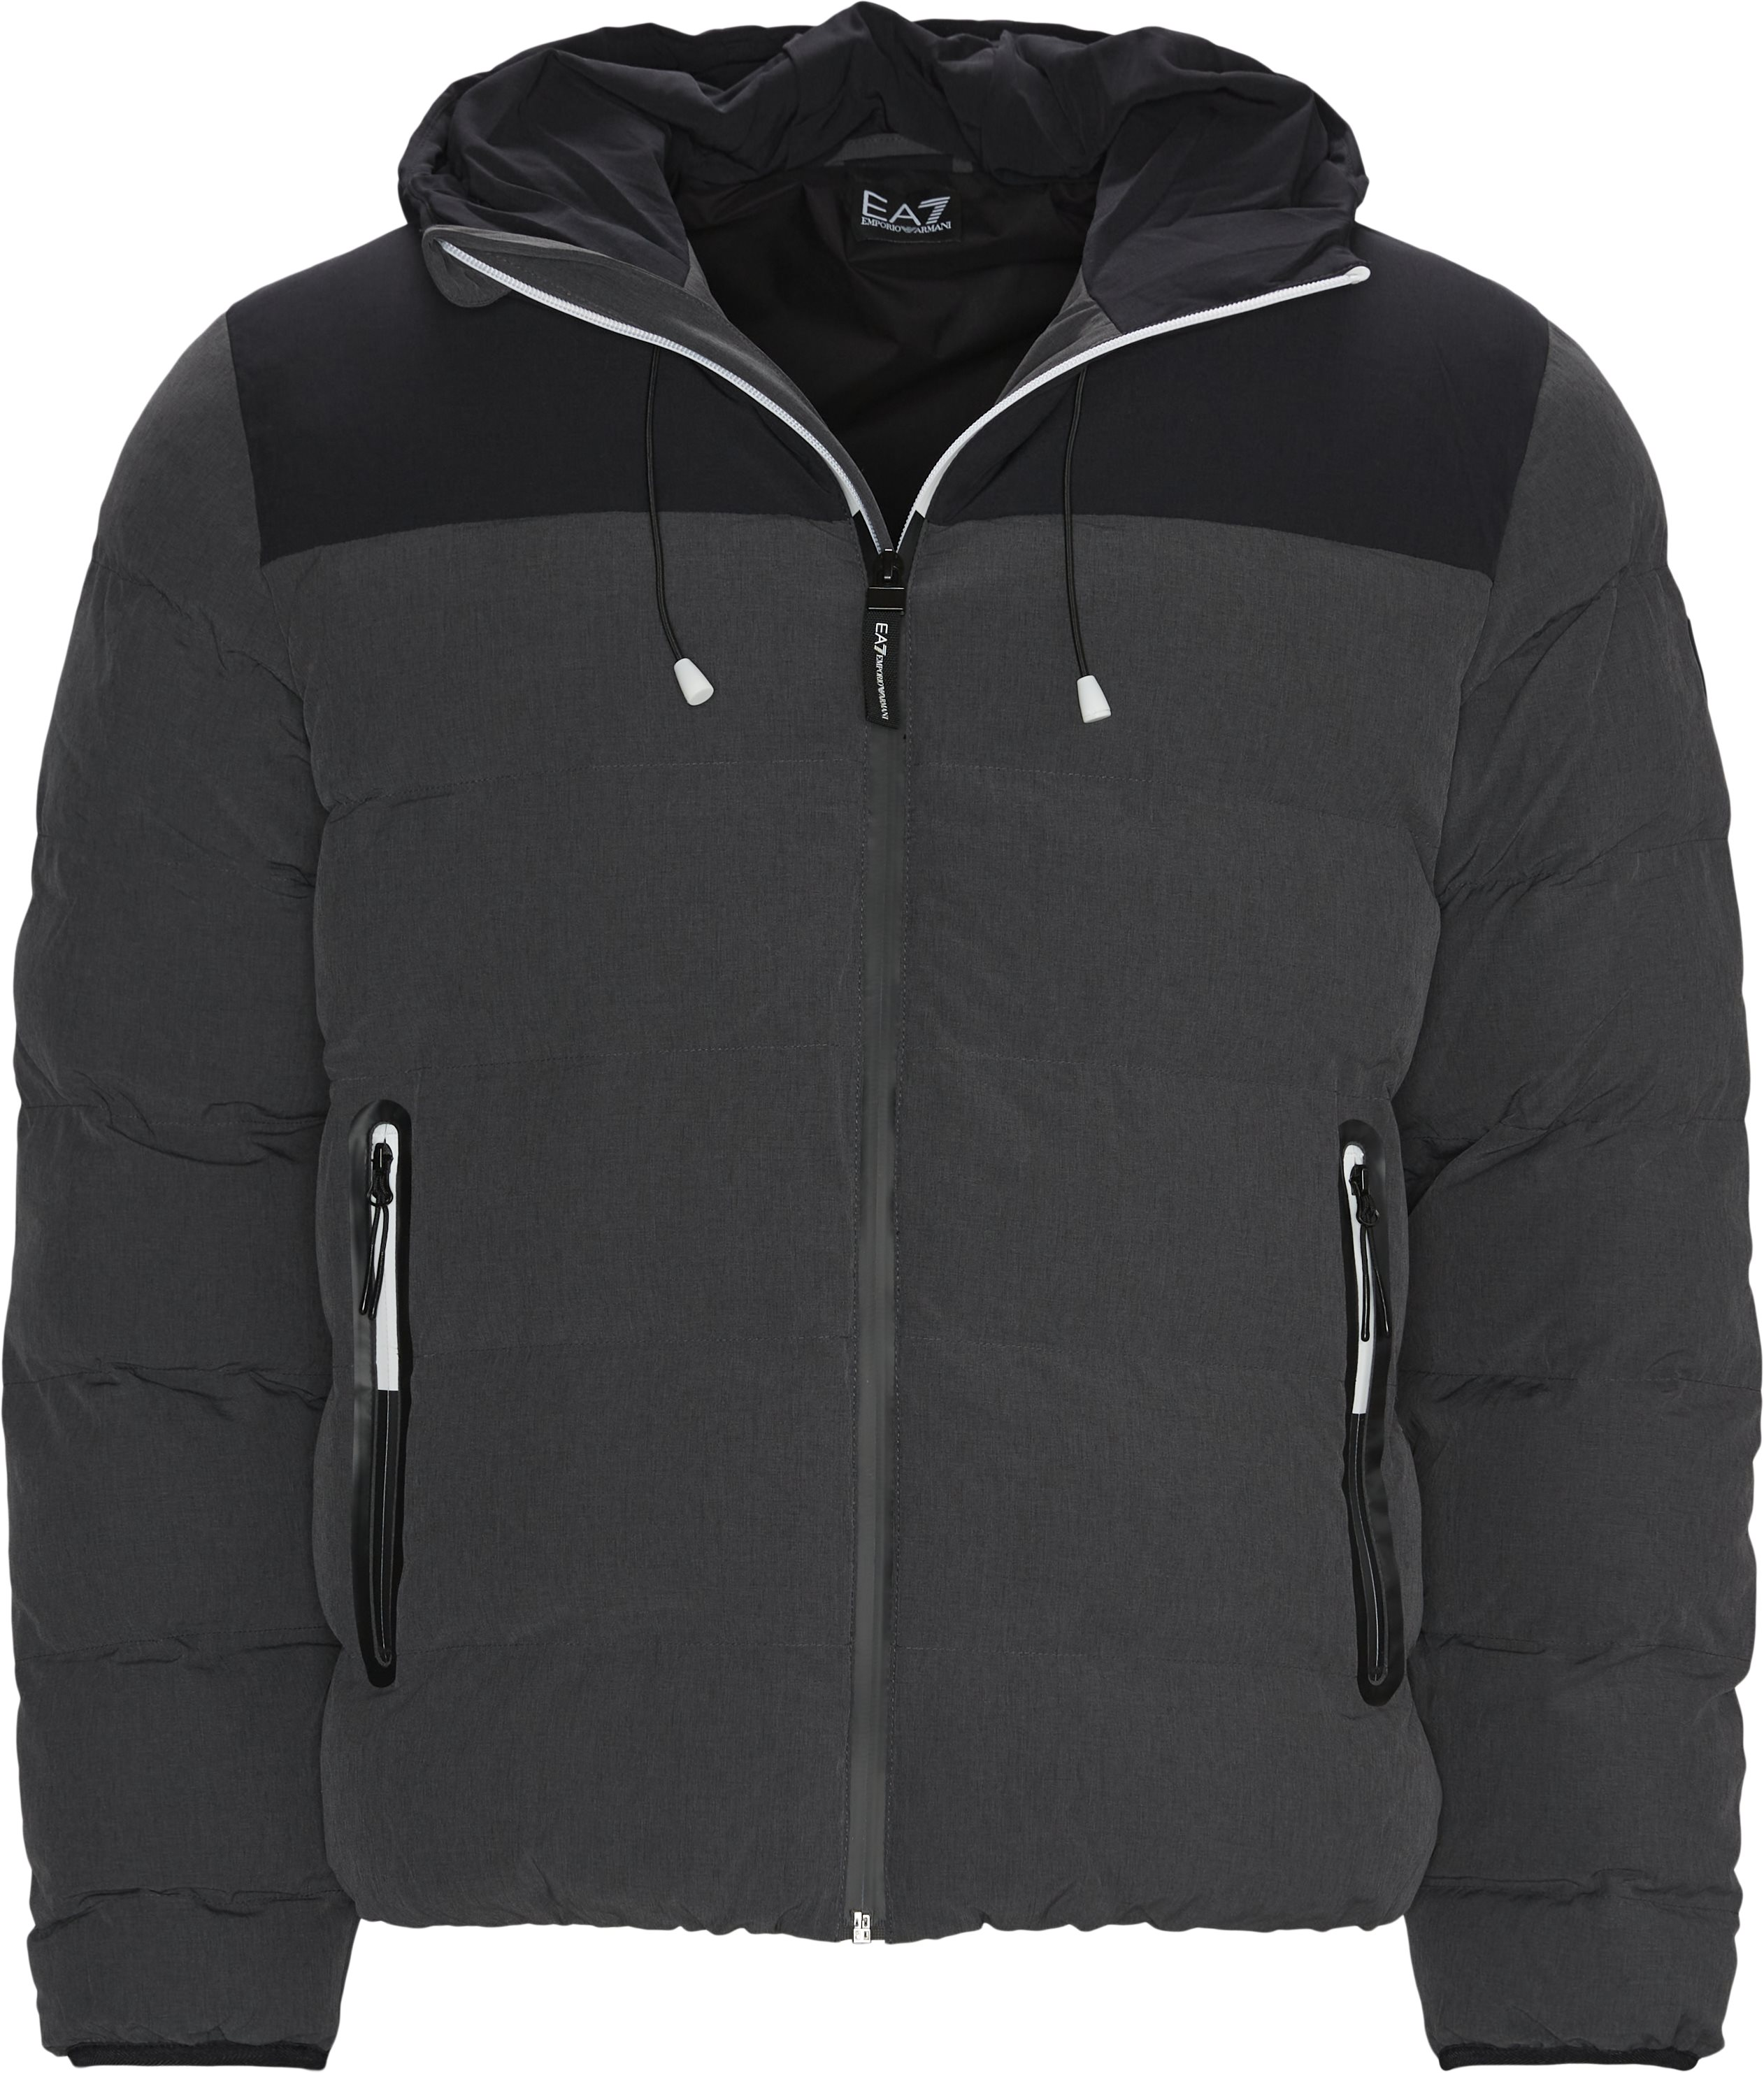 PN1BZ Jacket - Jackets - Regular - Grey